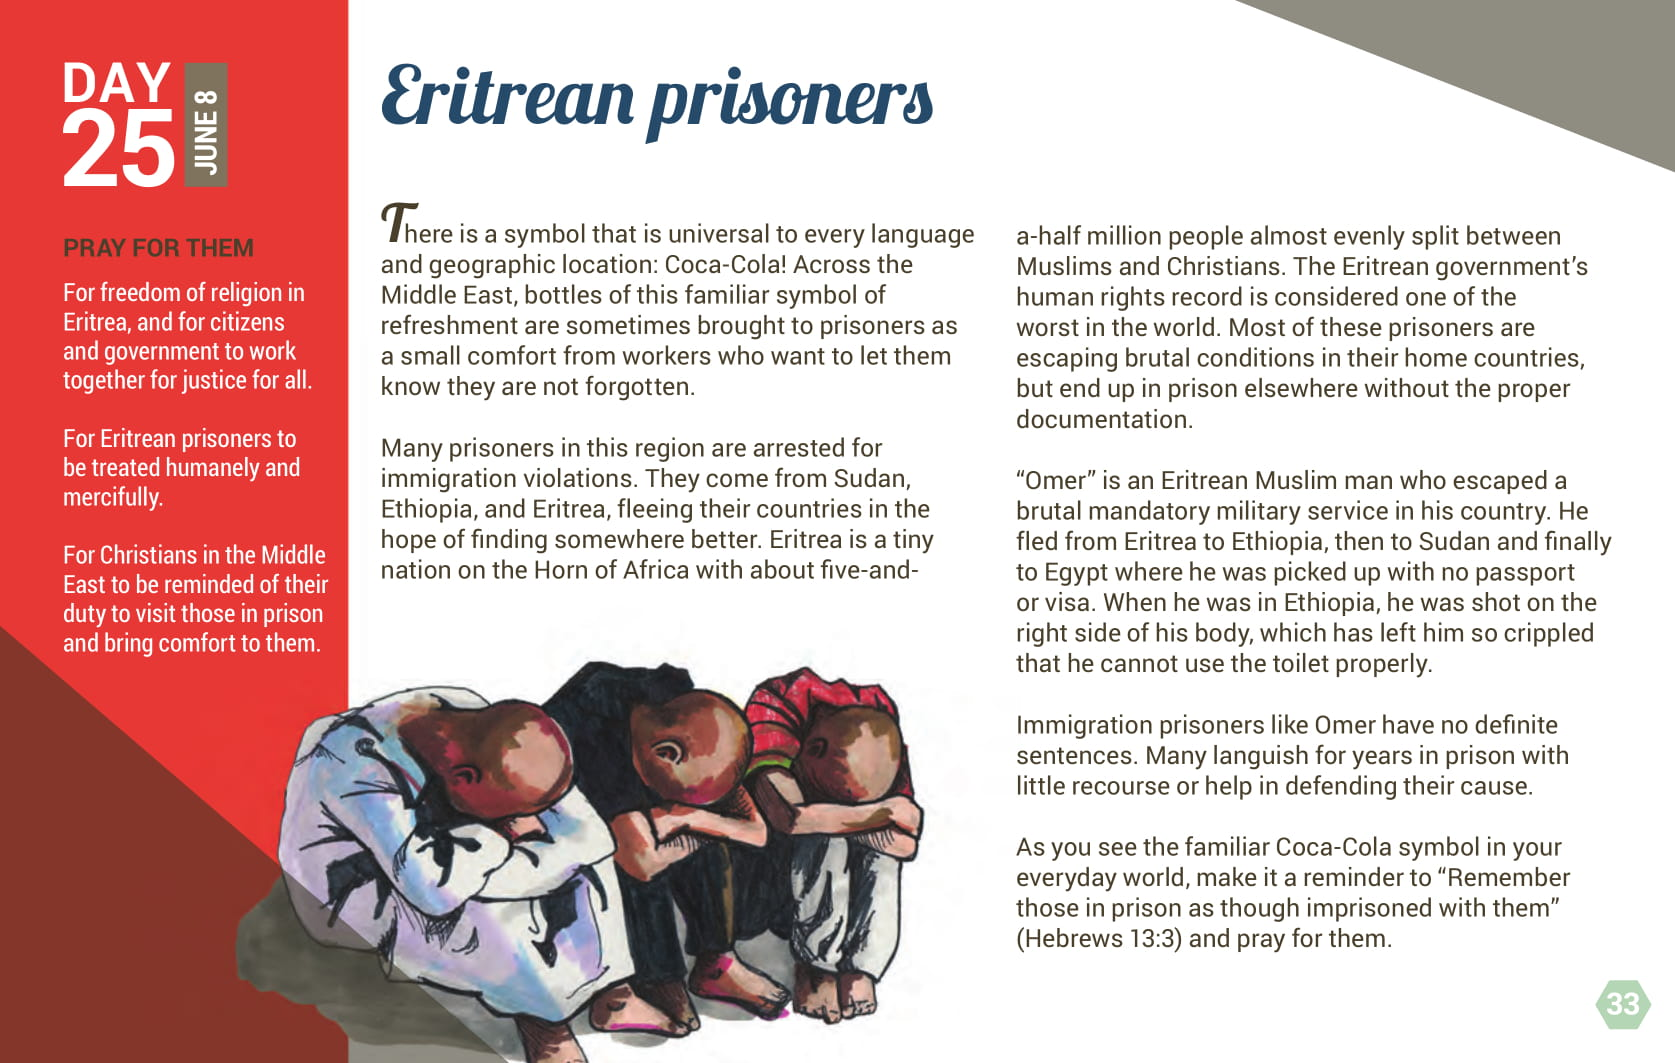 Day 25 - Eritrean prisoners